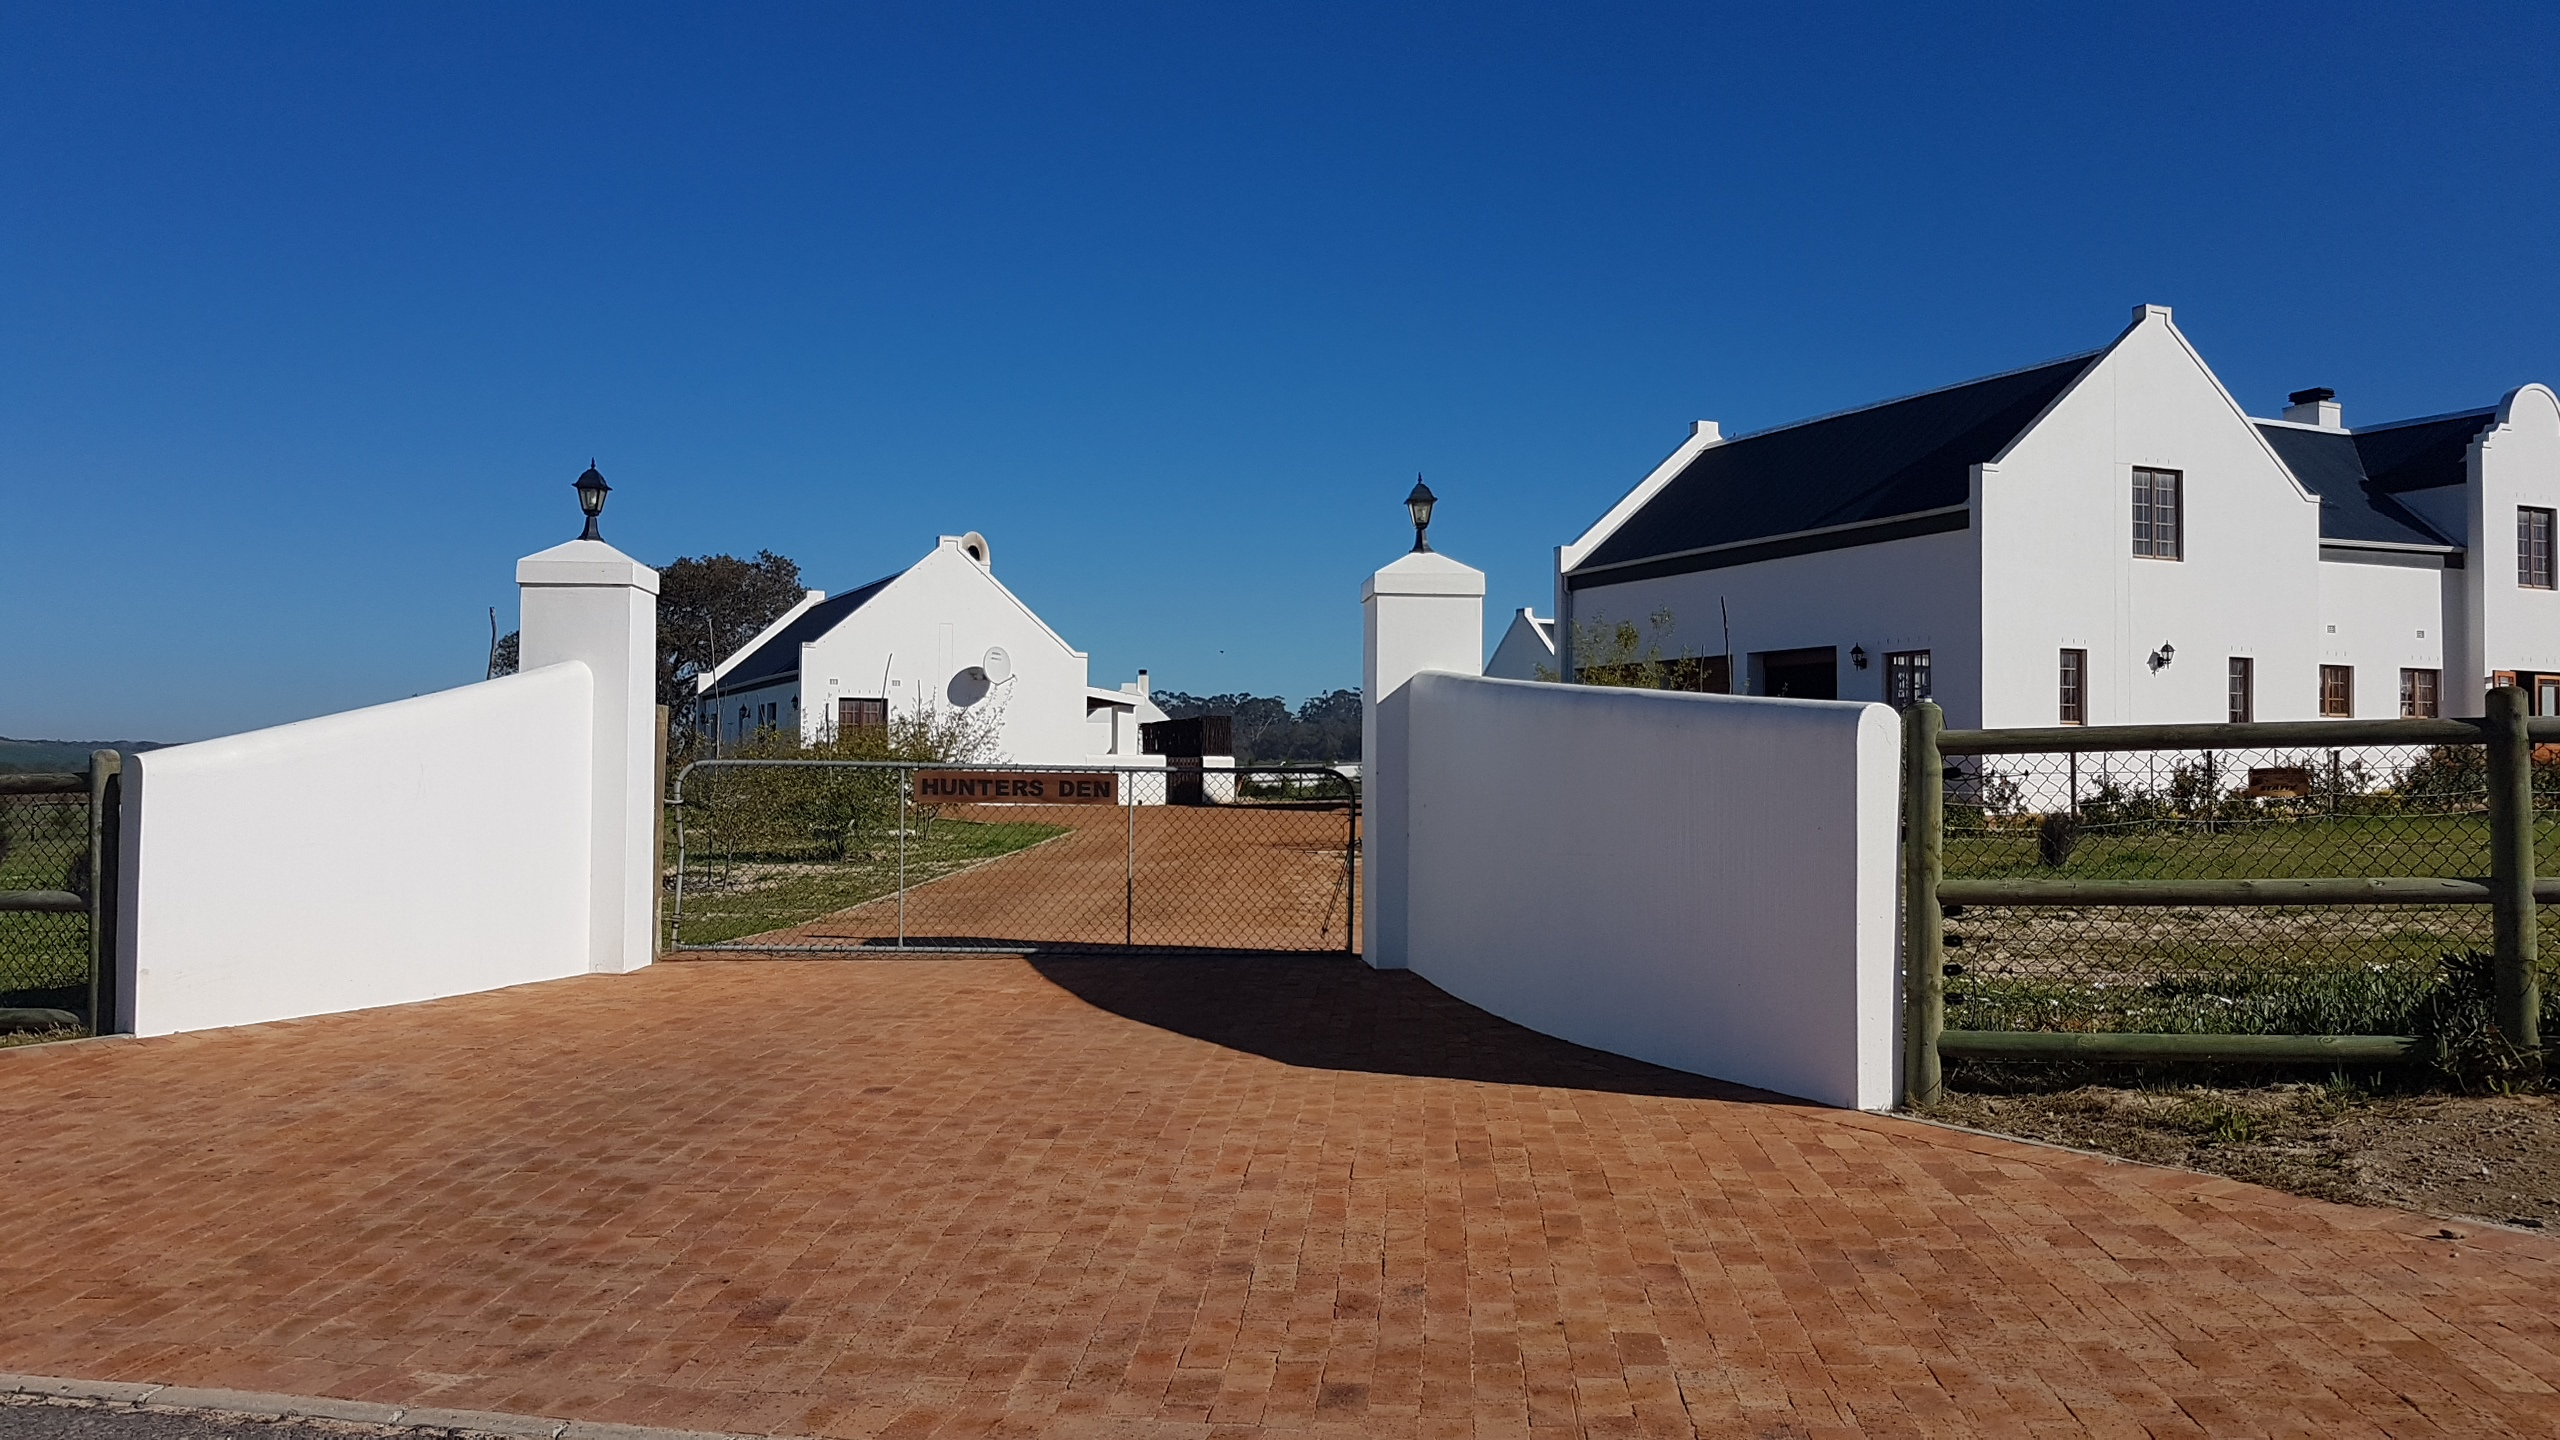 Looking for a horsey Smallholding for sale in Cape Town with out-rides, blue skies, pretty views, and all the things that unicorns bring??? Look no further, your dream awaits...